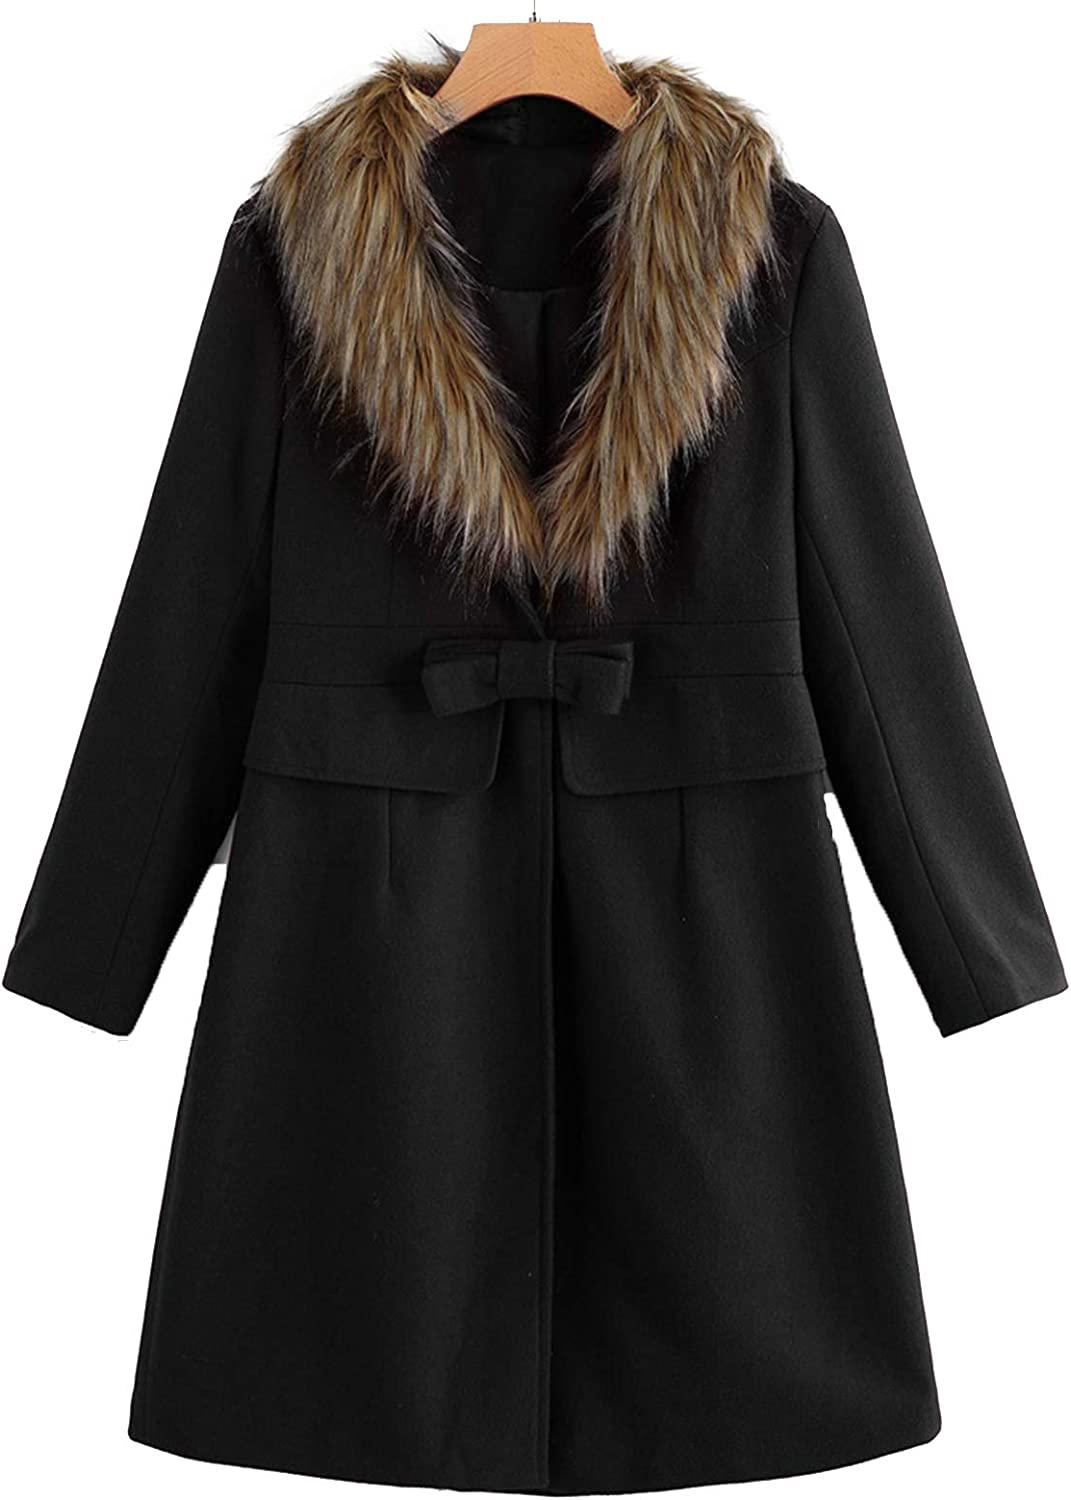 Pea Coat for Women Red with Faux Fur Lapel Ourwear Long Black Winter Trench Coat